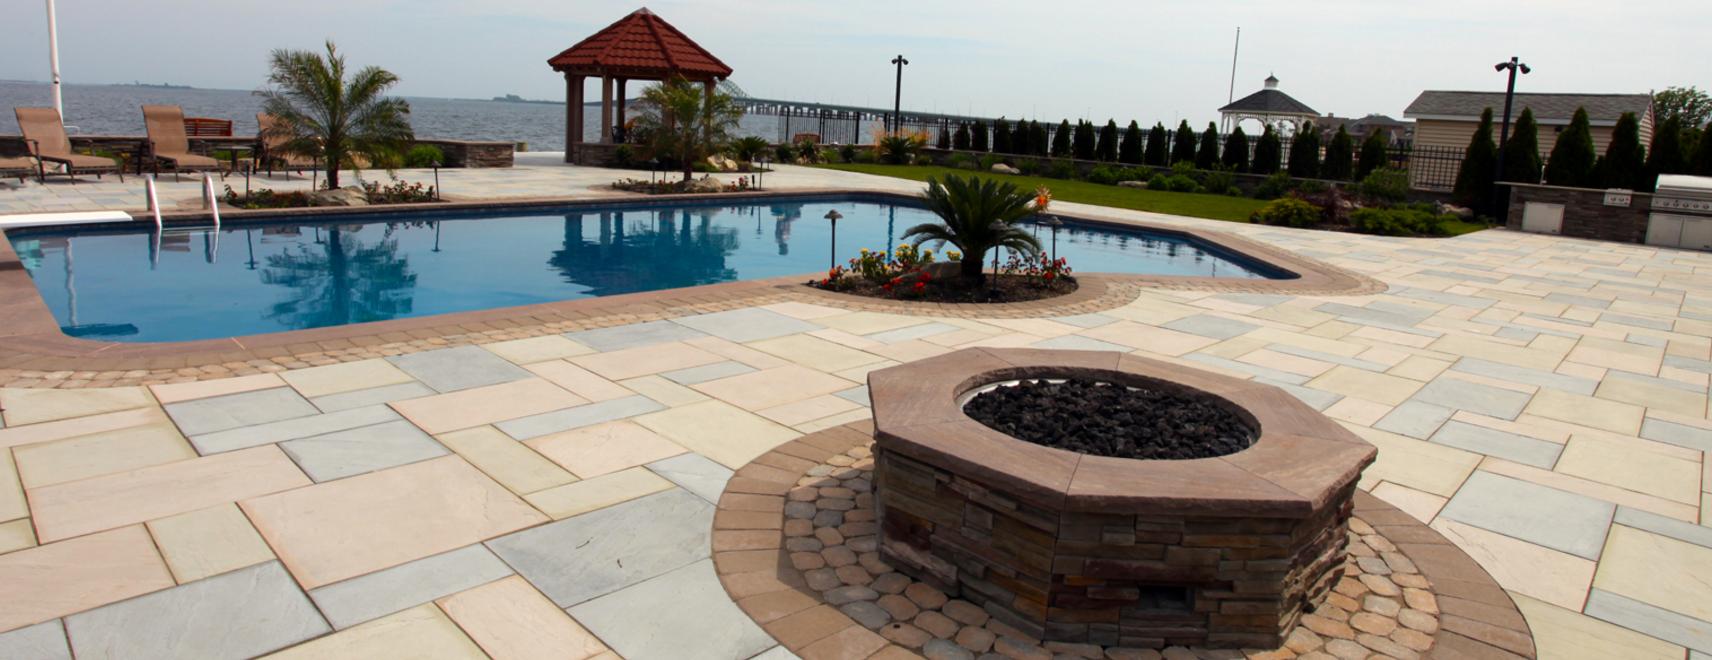 West Islip, NY swimming pool patio and fire pit